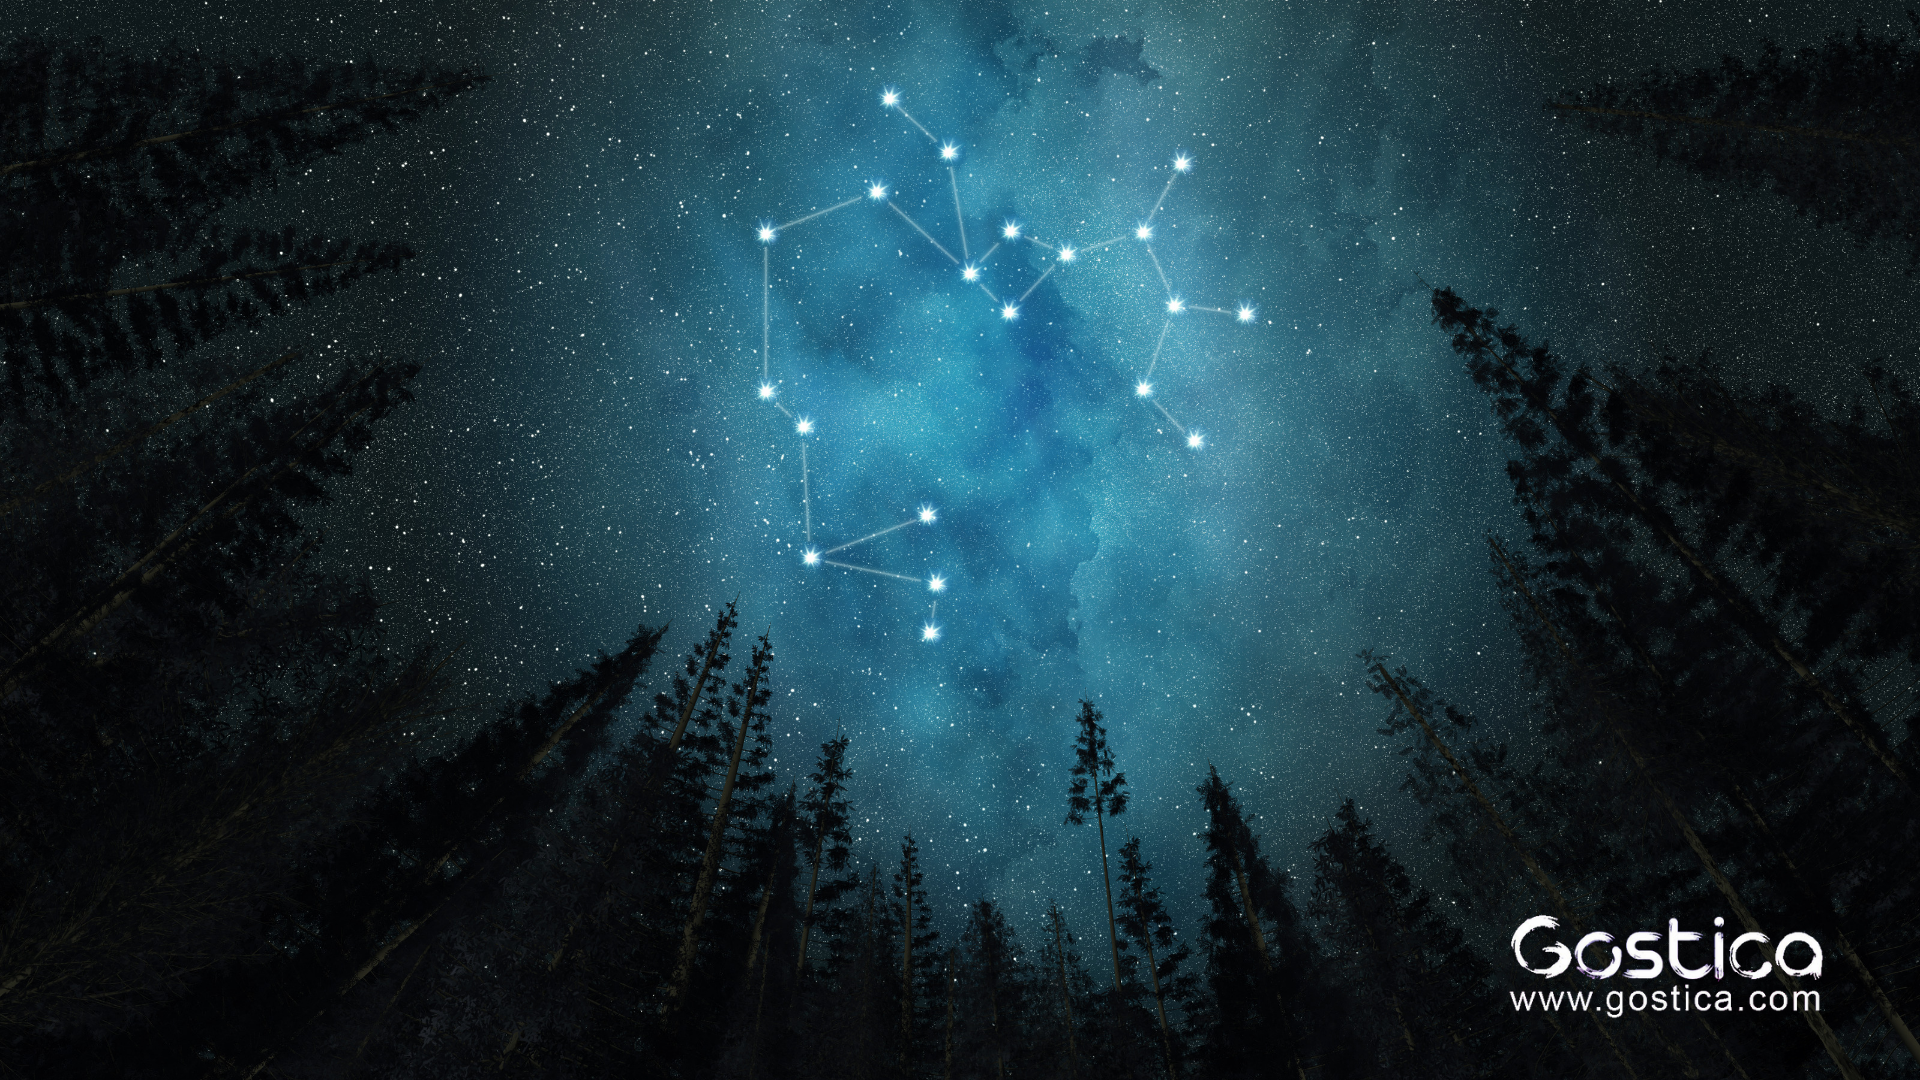 horoscope, sagittarius constellation